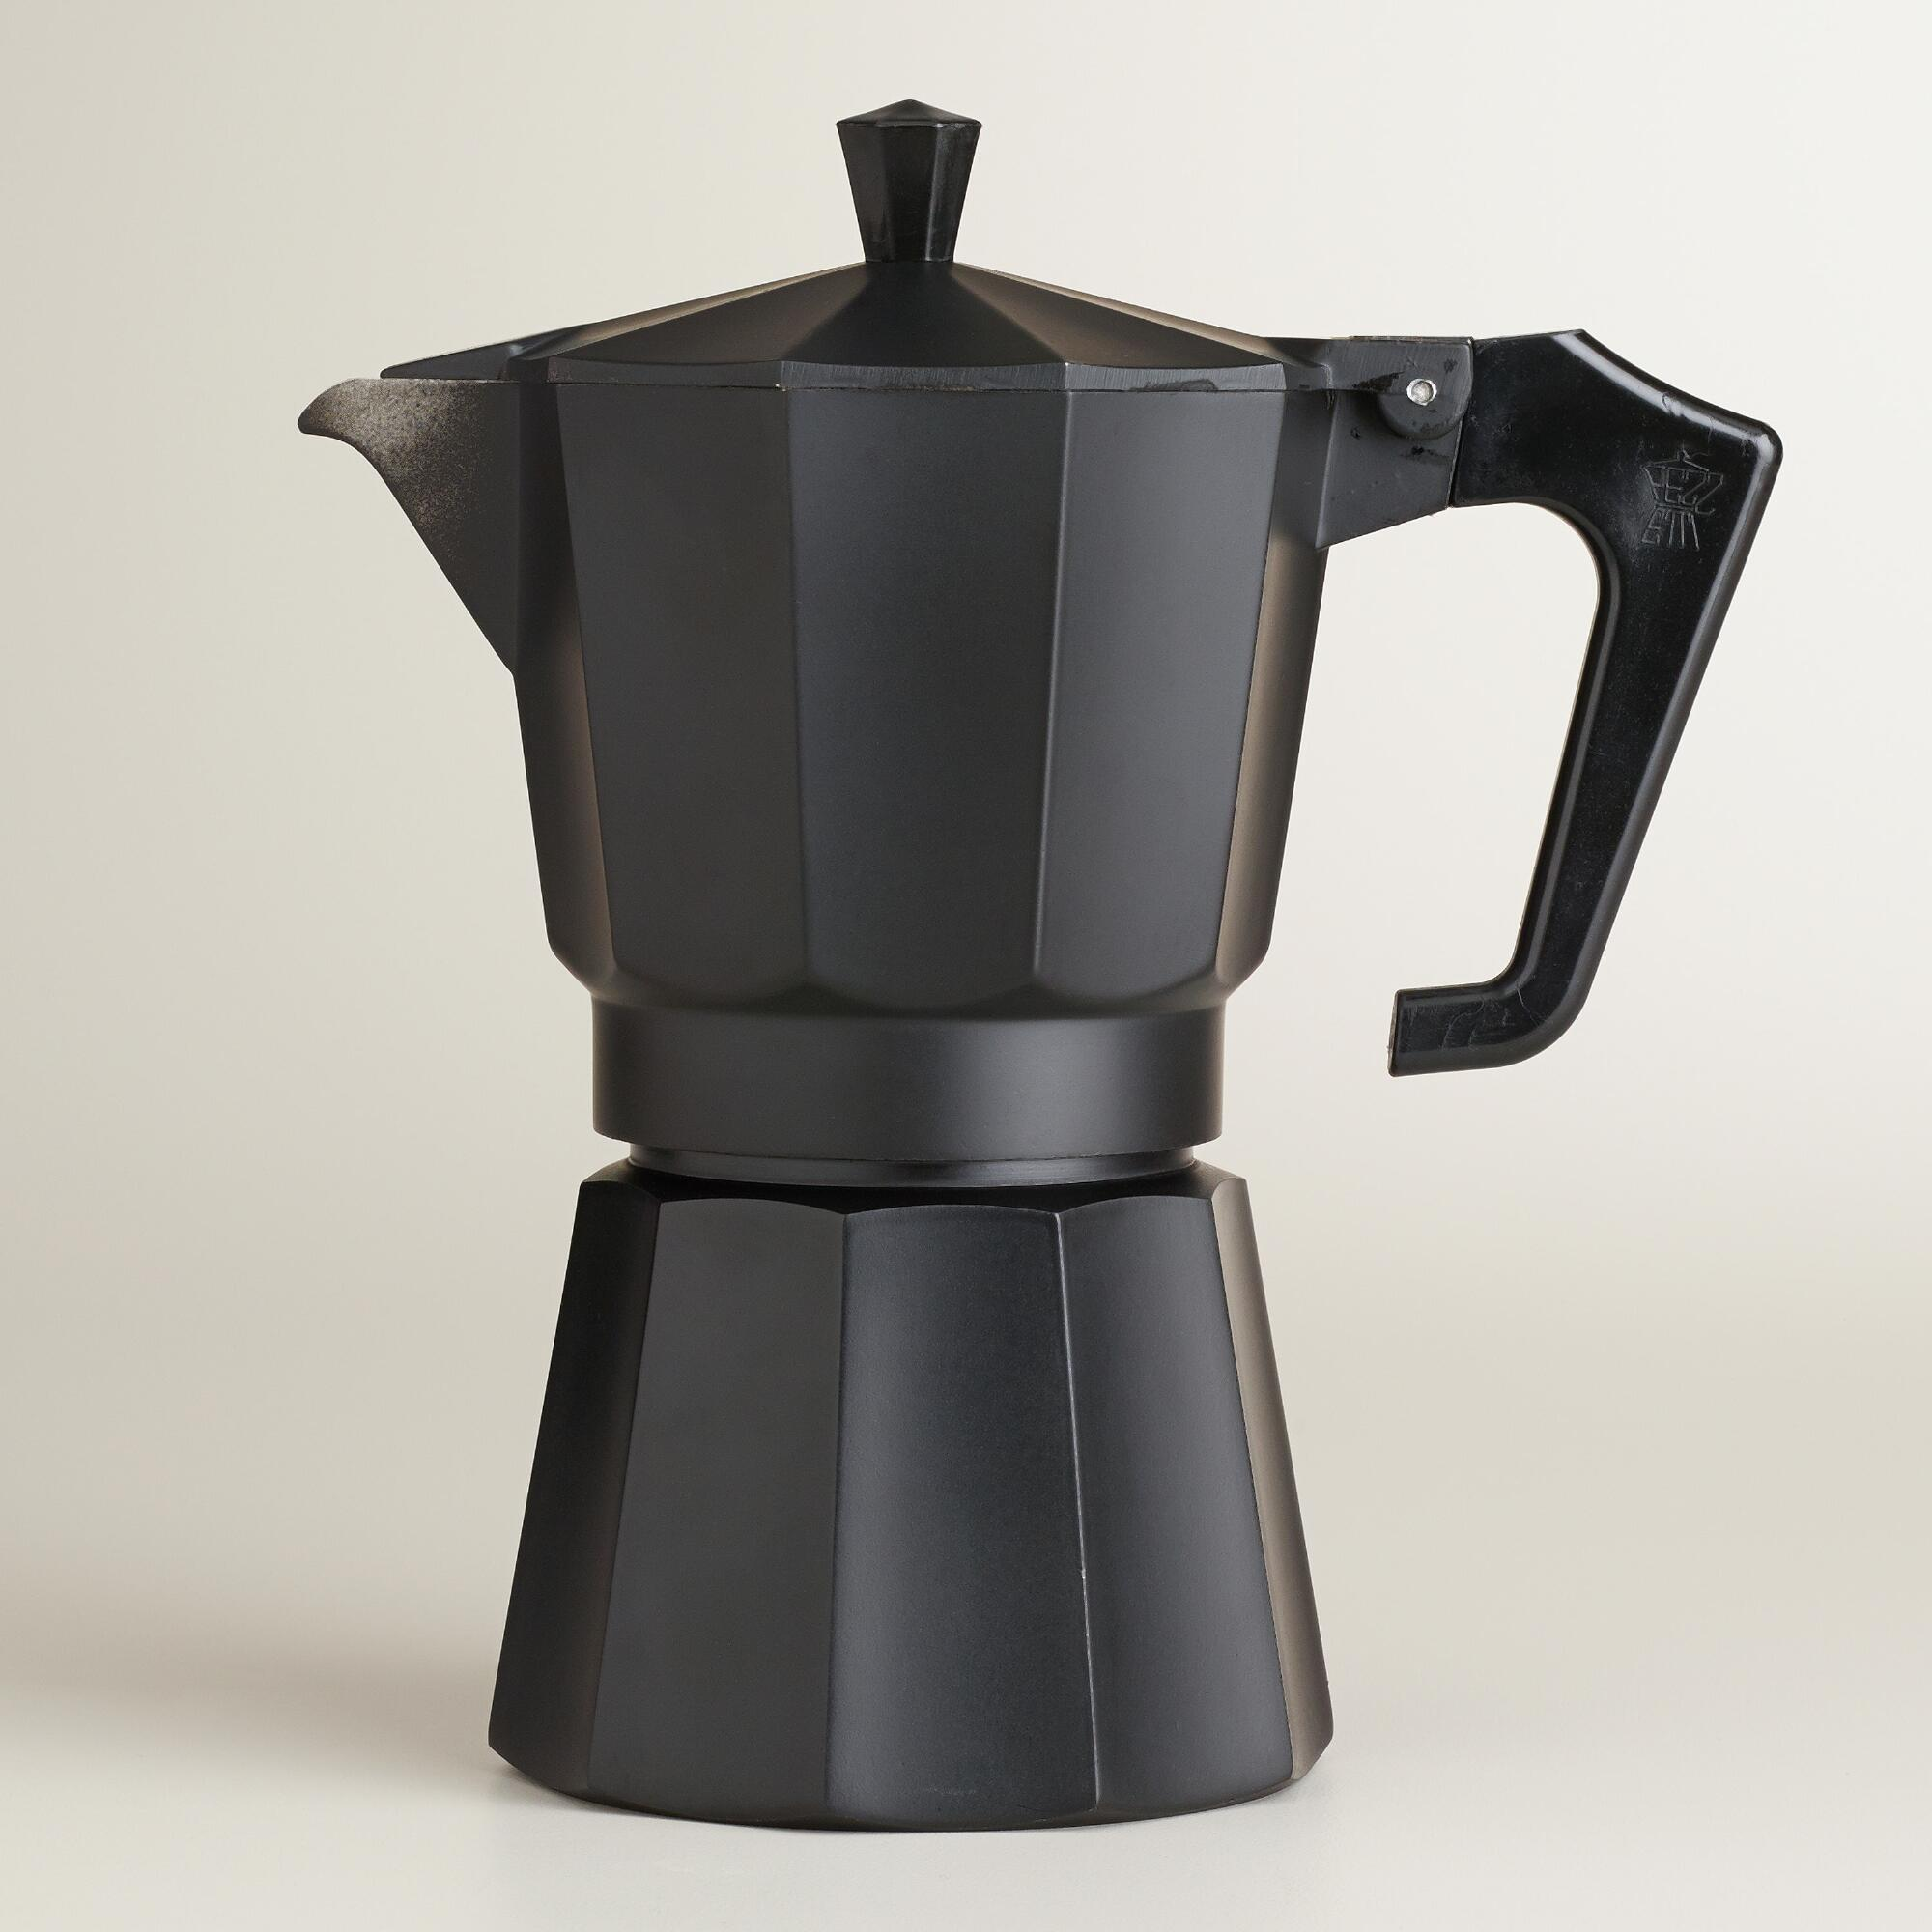 How to brew coffee using a Moka Pot video